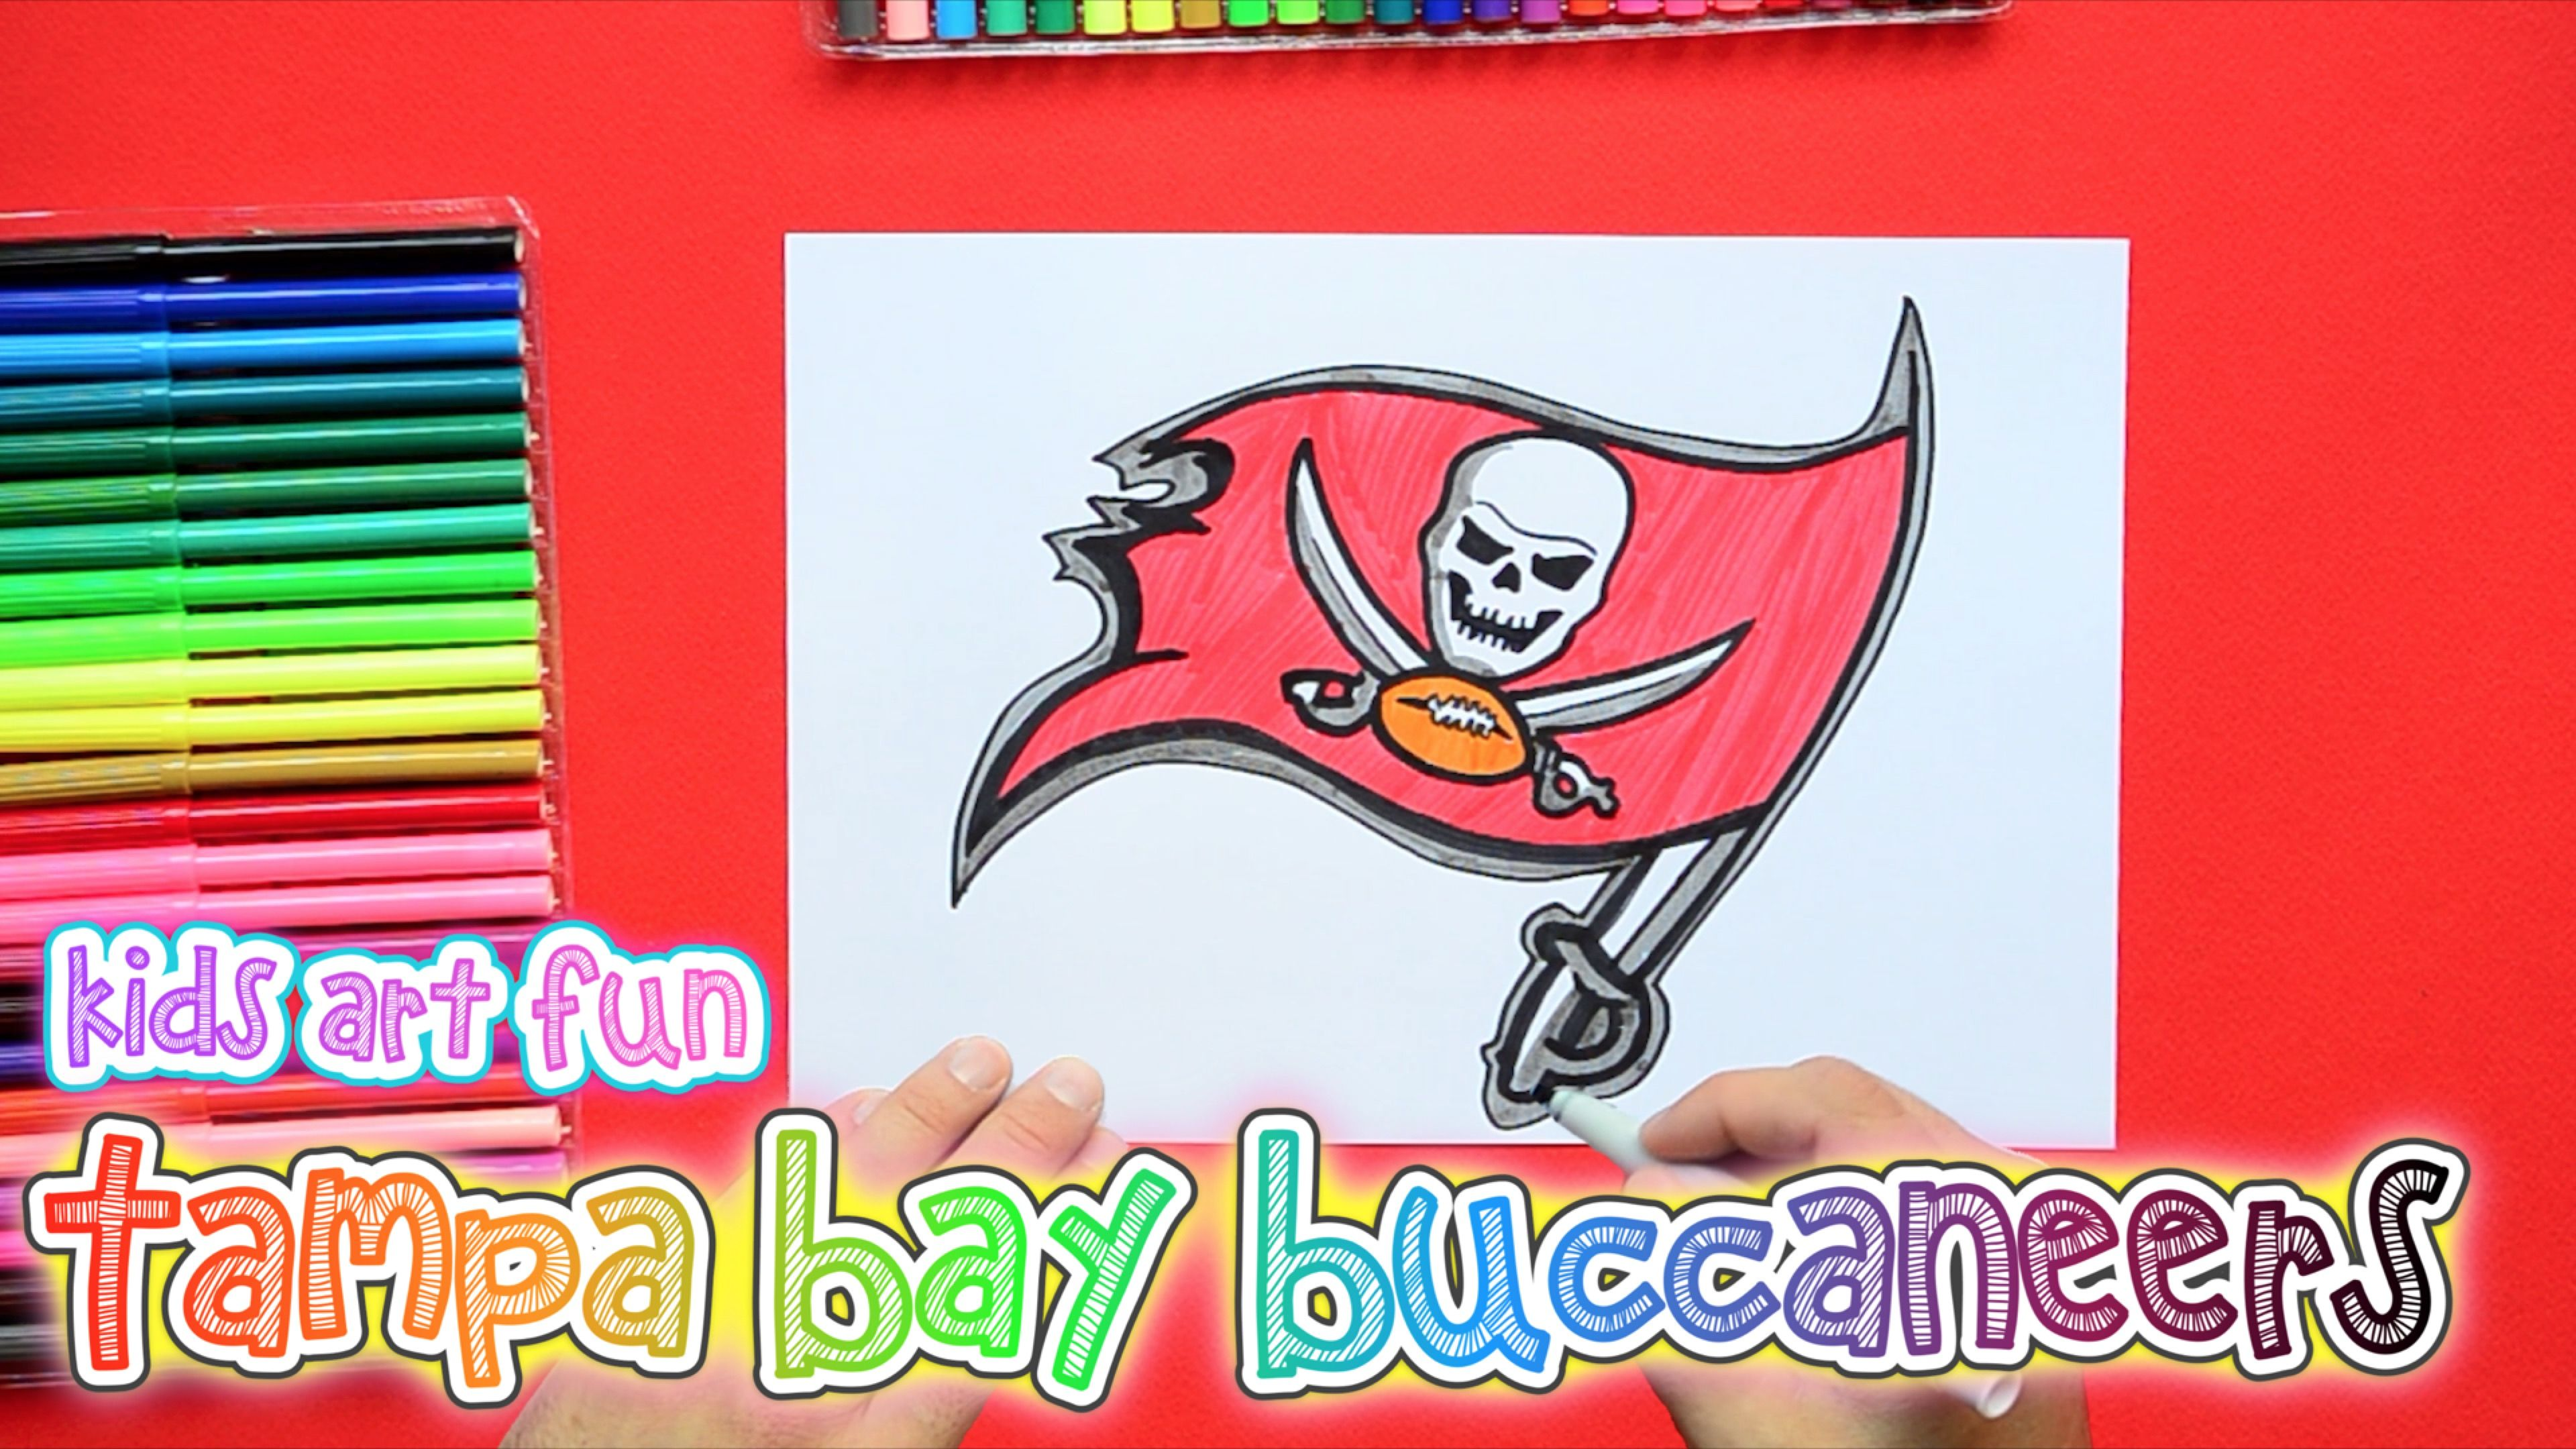 How To Draw And Color The Tampa Bay Buccaneers Logo Nfl Team Series Tampa Bay Buccaneers Tampa Bay Buccaneers Logo Tampa Bay